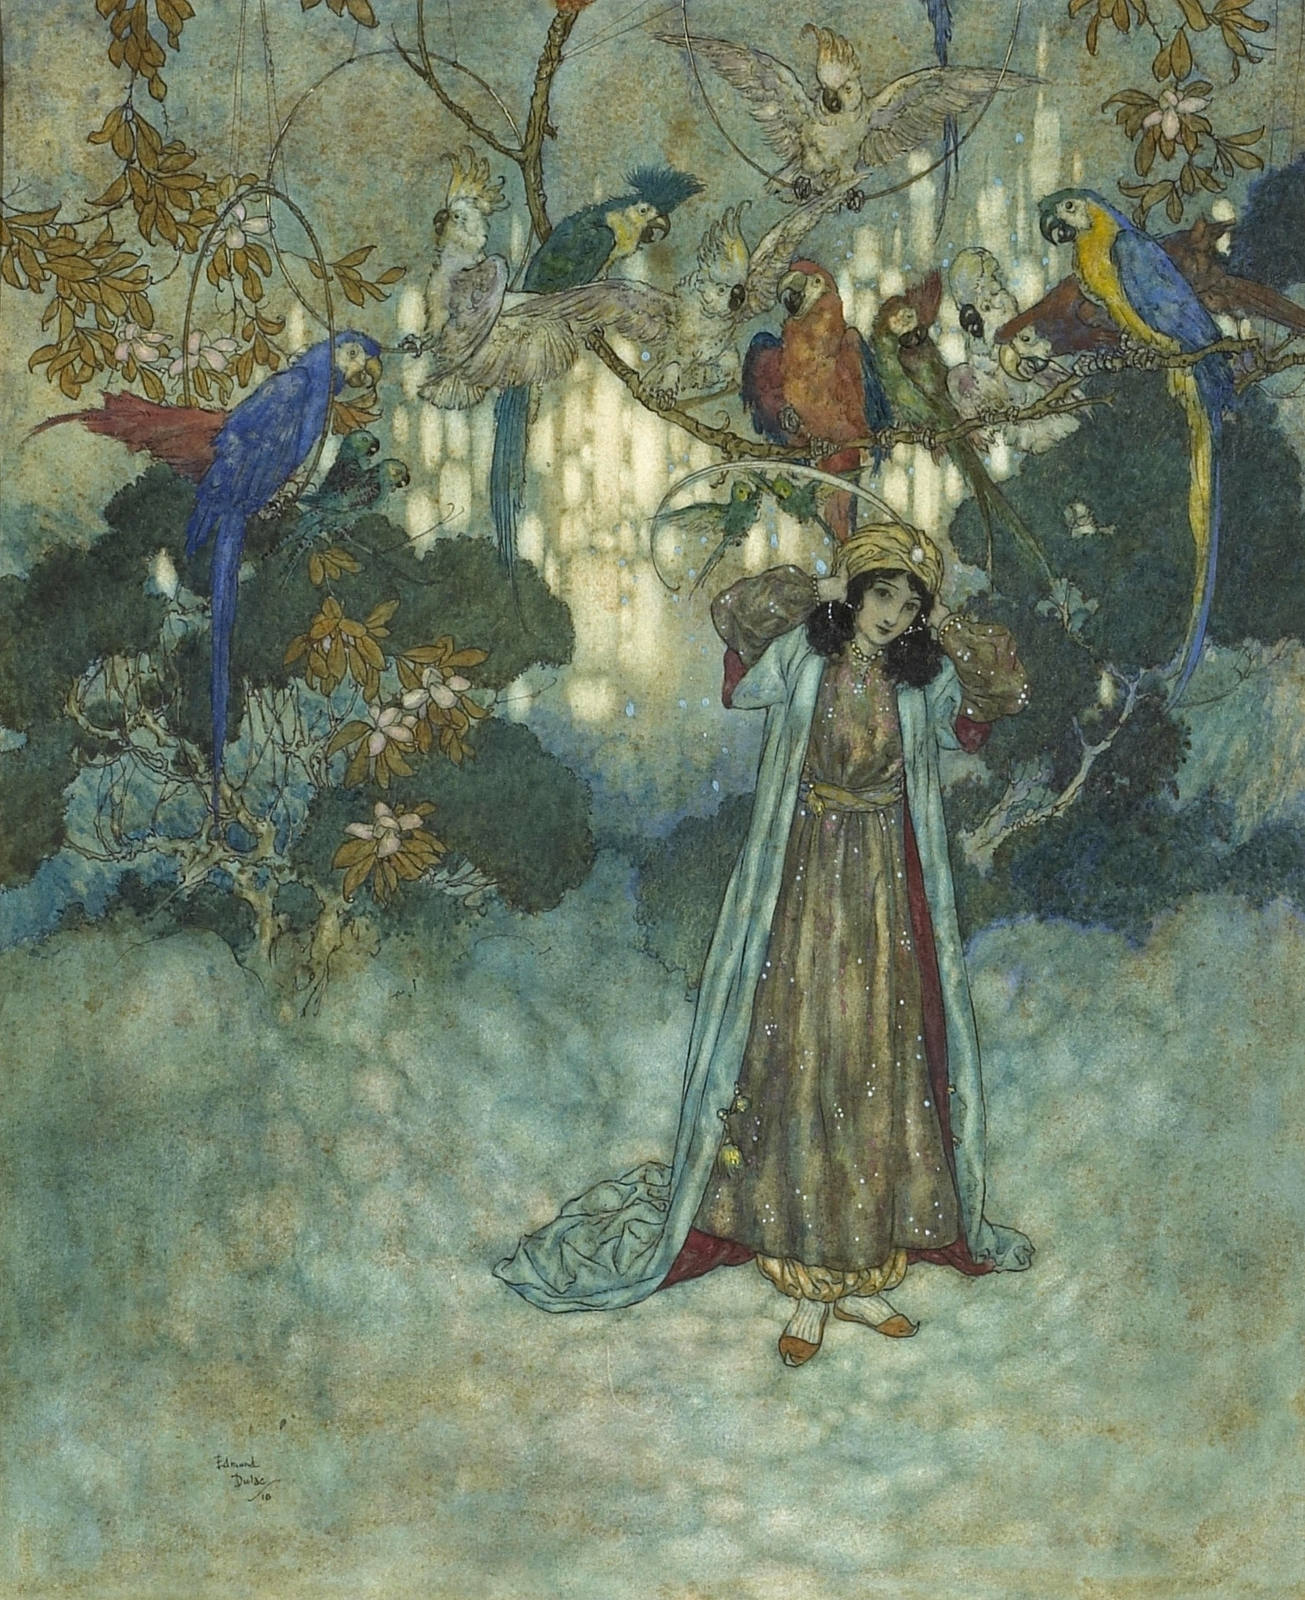 1910_Спящая красавица и другие сказки (Quiller-Couch, Arthur, Sir. The Sleeping Beauty and other Fairy Tales)_30.5 x 25.4_бумага, акварель и карандаш_Частное собрание.jpg